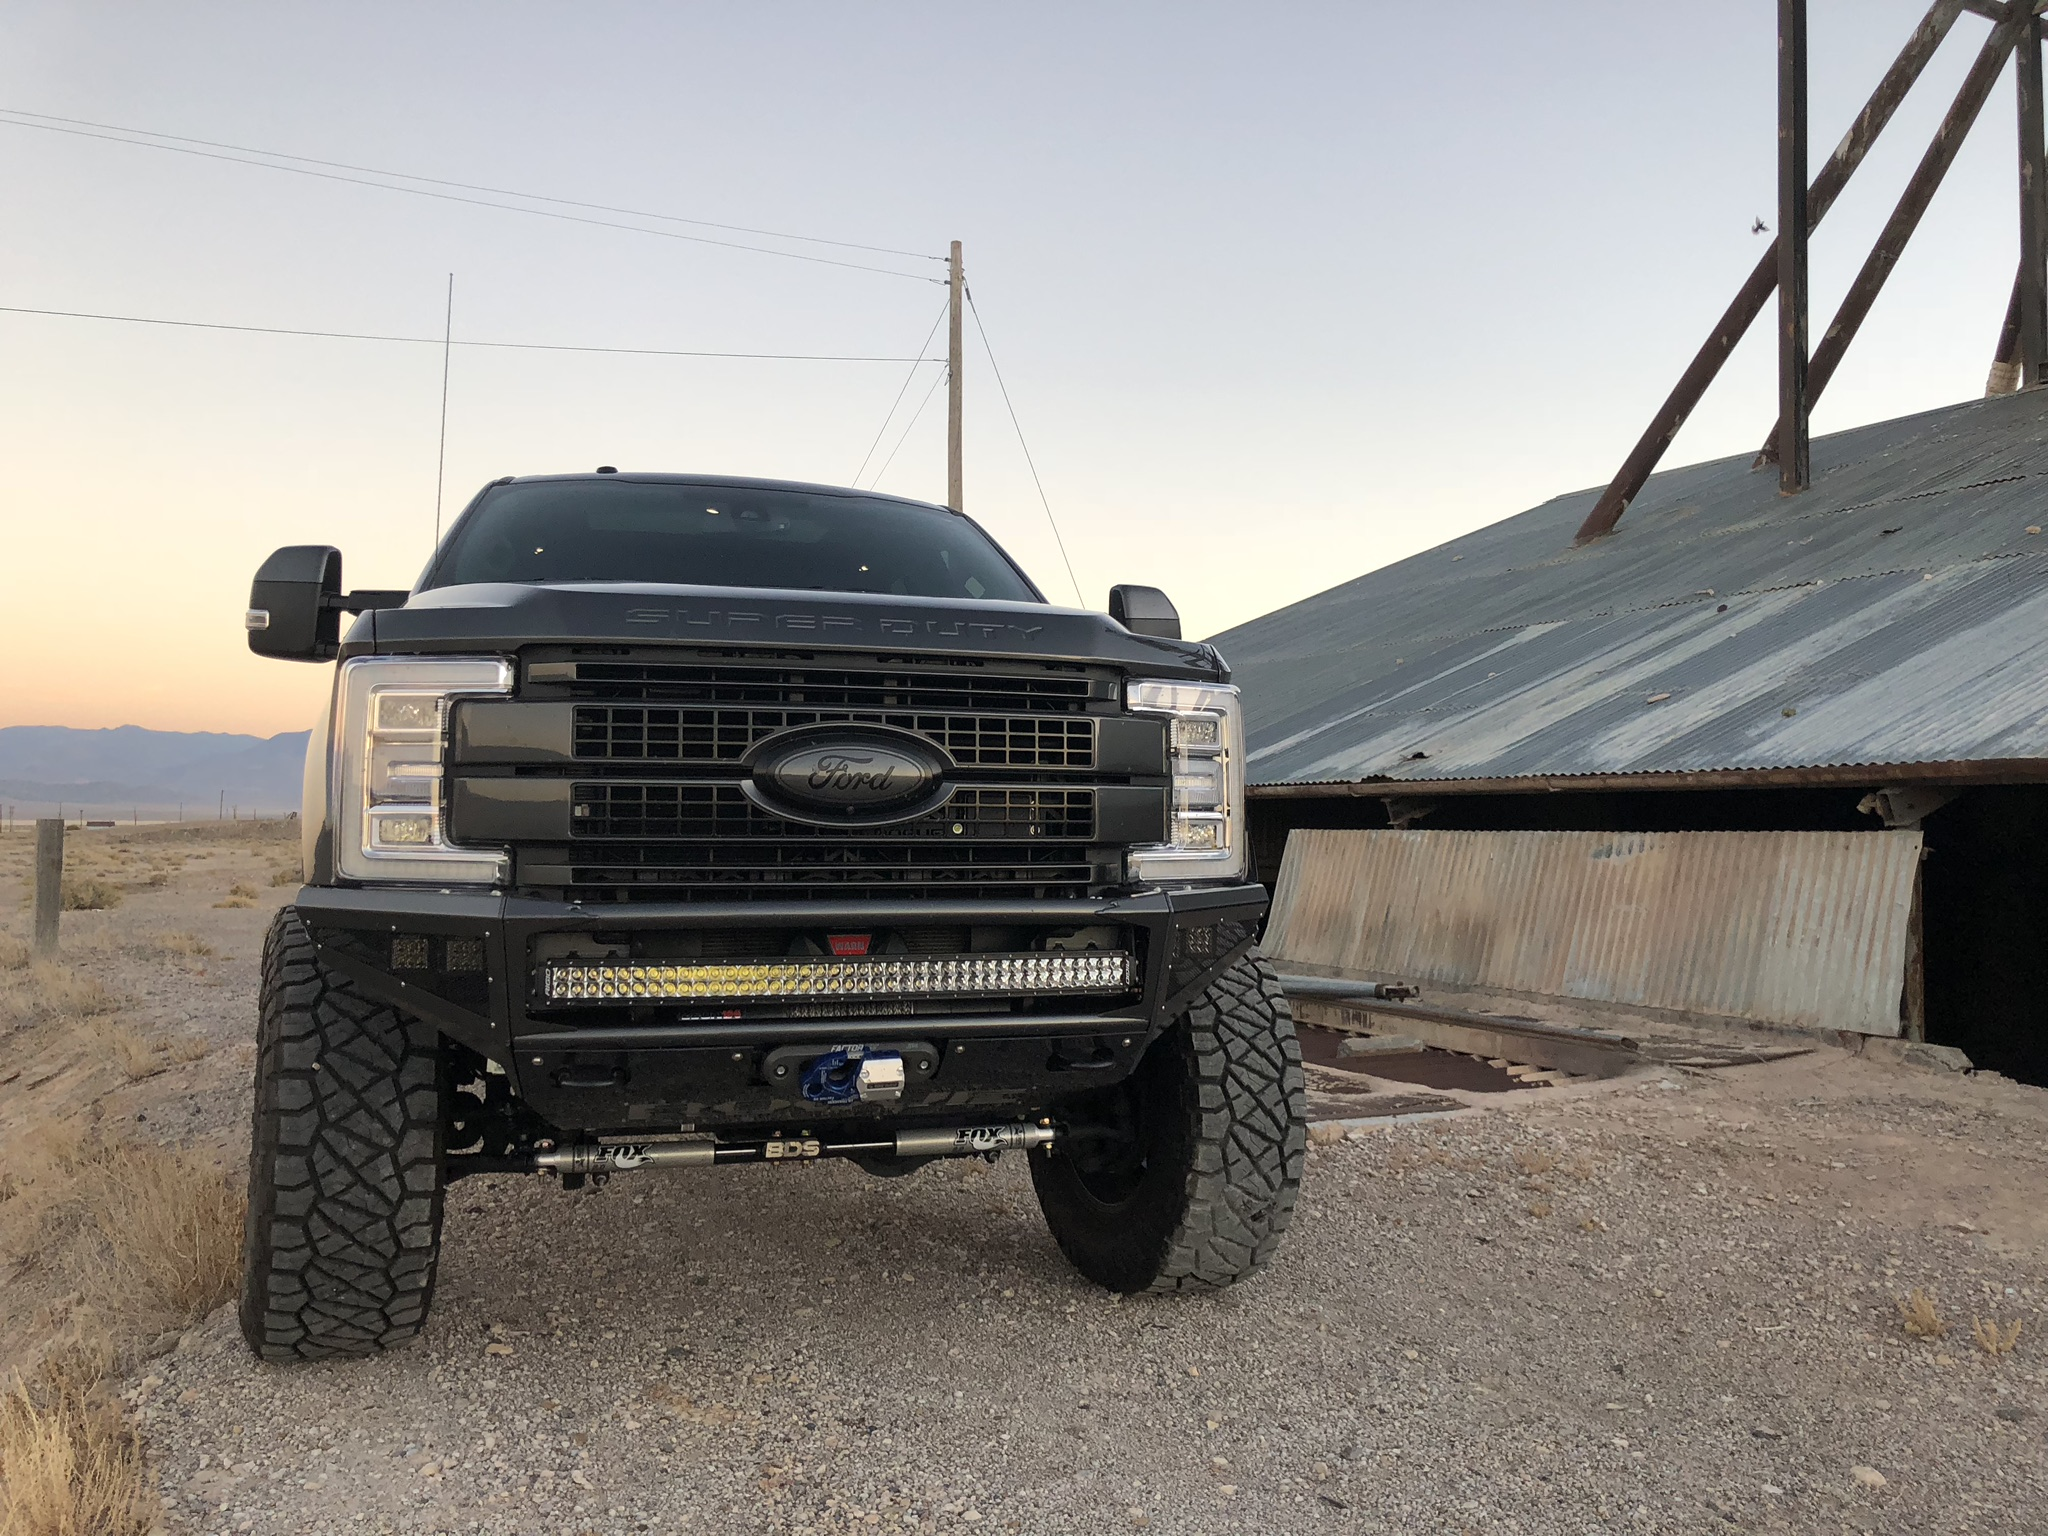 THE SUPERDUTY ENFORCER SERIES IS HERE - We have designed multiple styles but for now get your 250\350 and or 450 width bumpers that are completely modular. Accessories are endless, ask about custom width applications. If you need to get these shipped before powder coating and to arrive primed ready for your shop to paint please call (702) 781-7211 and leave a message, you can also email Info@rogueracing.com